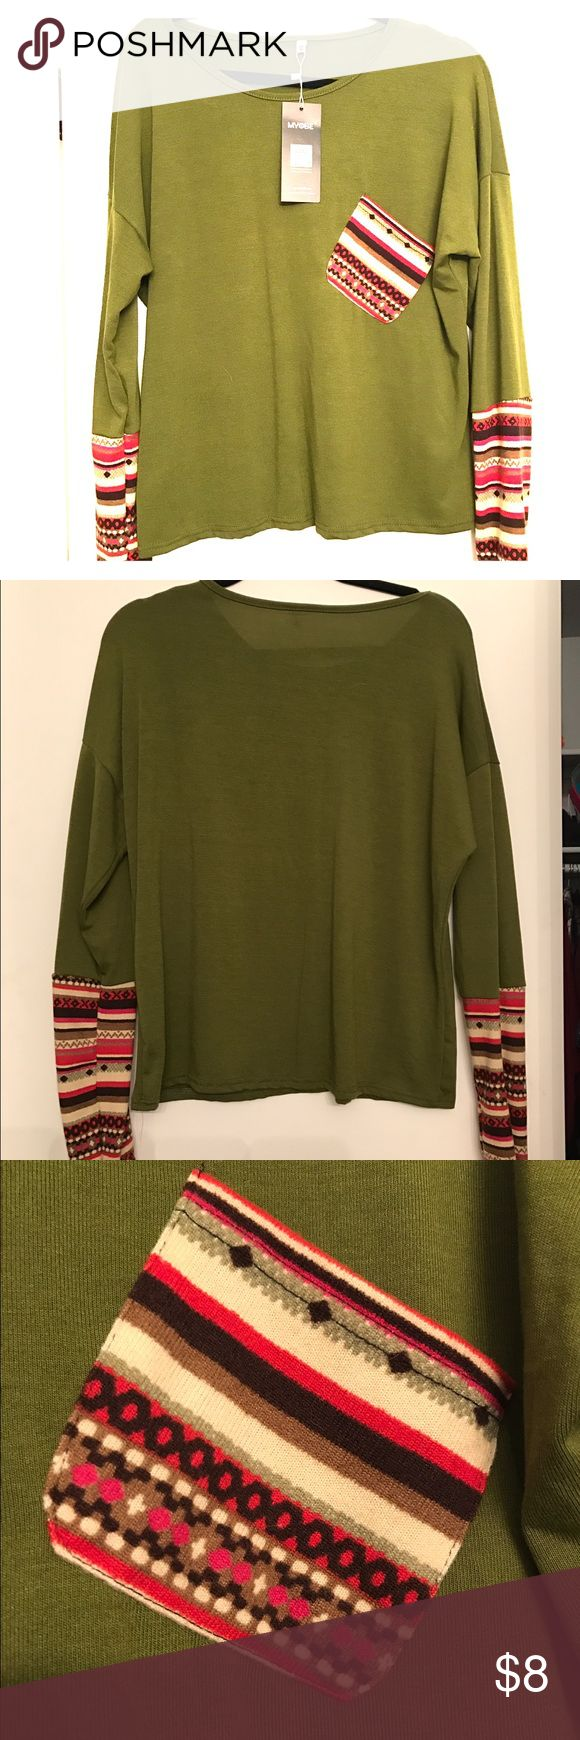 Olive green long sleeved top Olive green long sleeved sweater-like top with printed sleeves and pocket. Brand new with tags. Very soft material. Size XL but runs a little small, closer to a large. Sweaters Crew & Scoop Necks